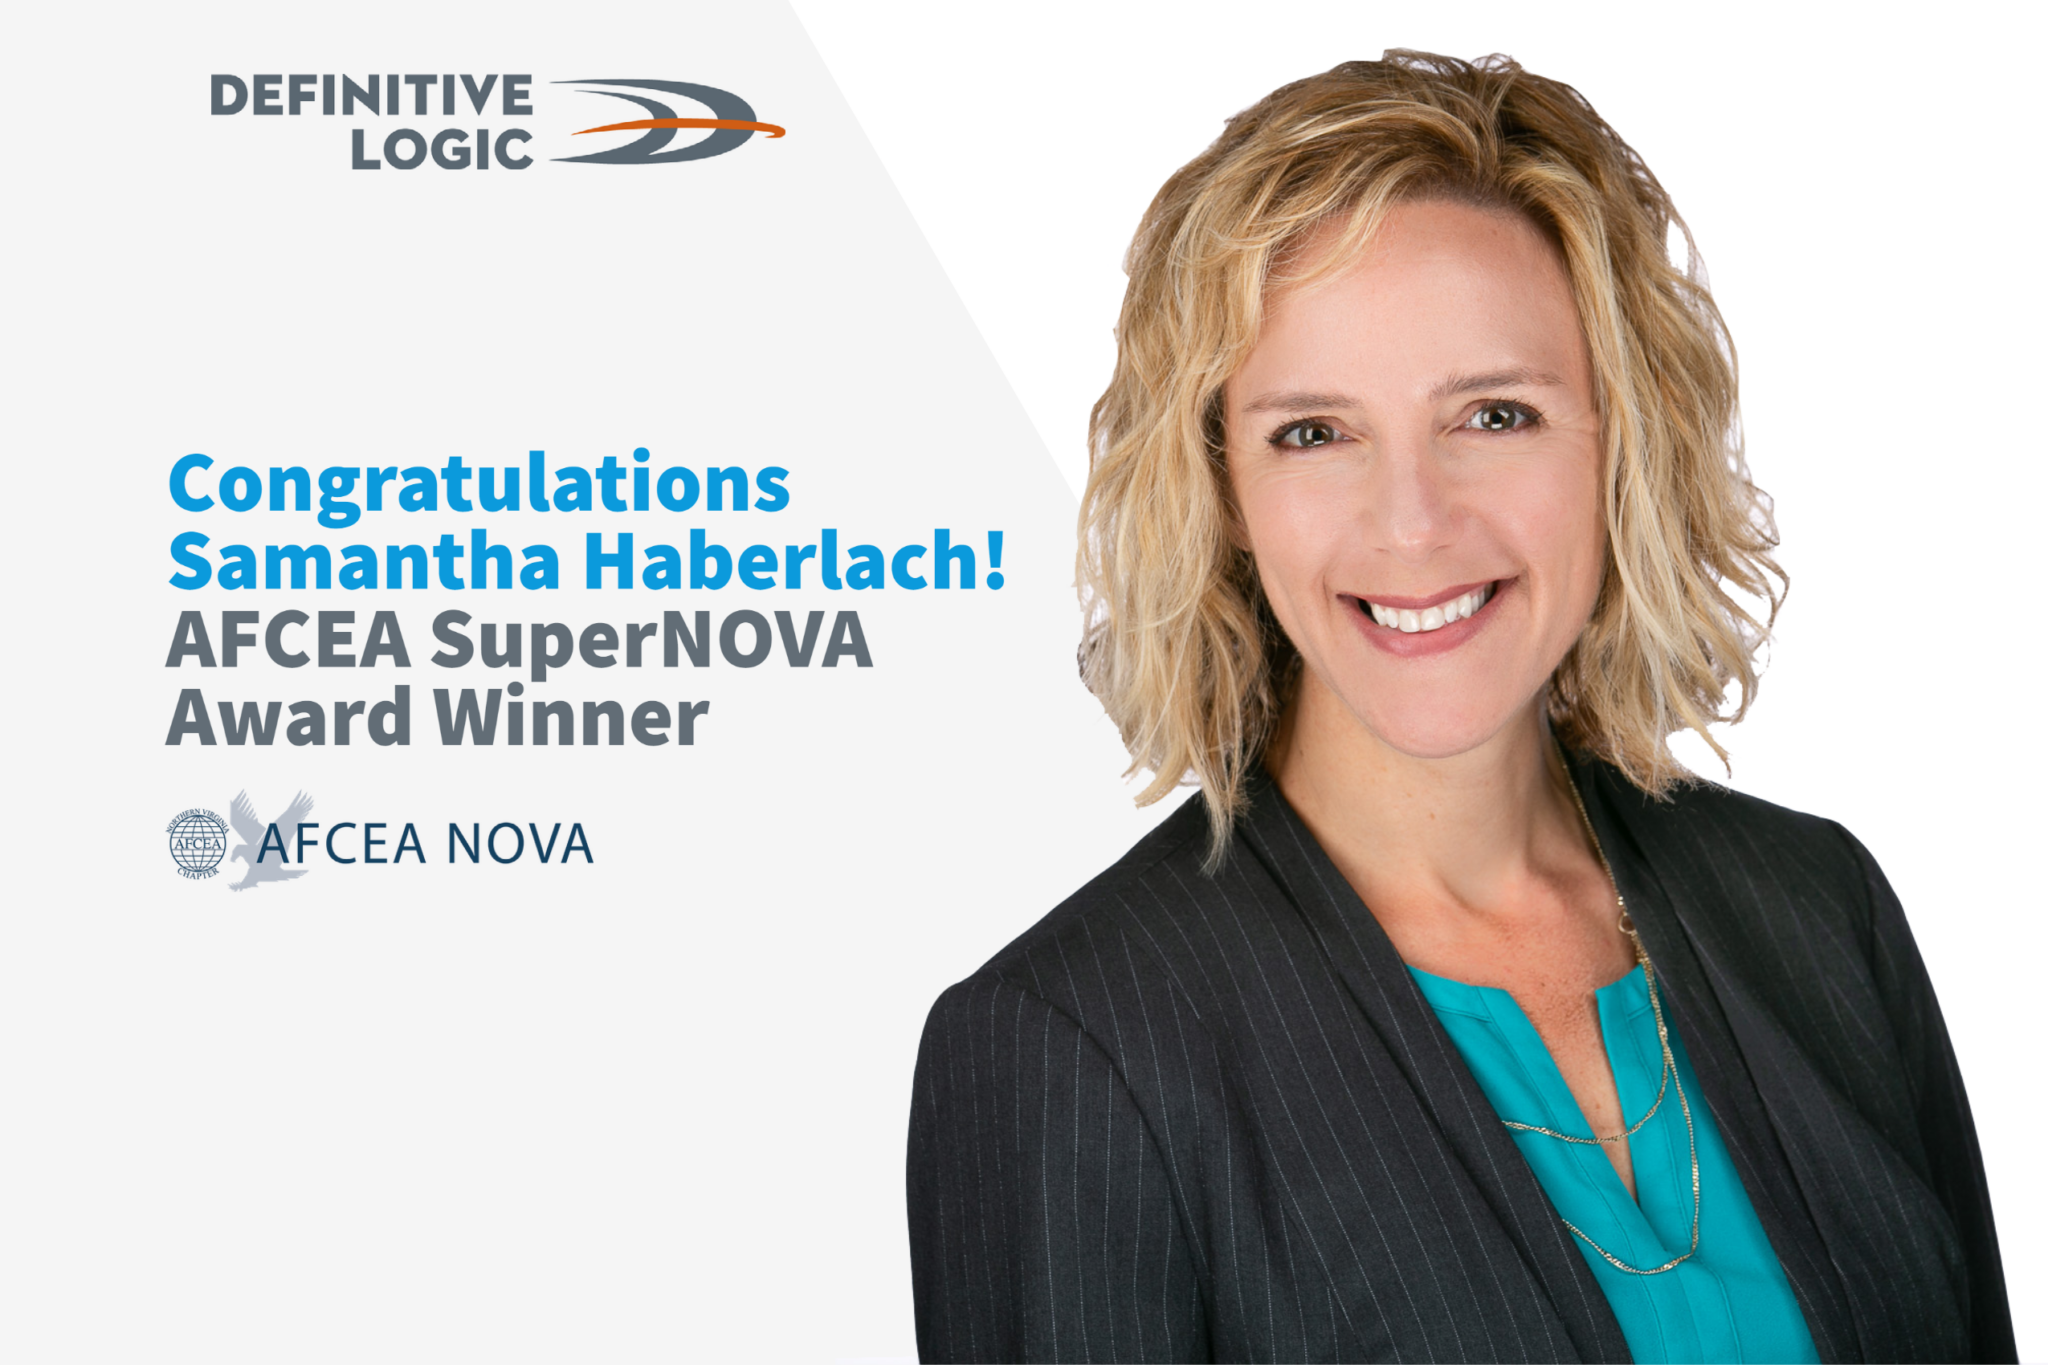 Definitive Logic's Samantha Haberlach Named AFCEA SuperNOVA December's Winner